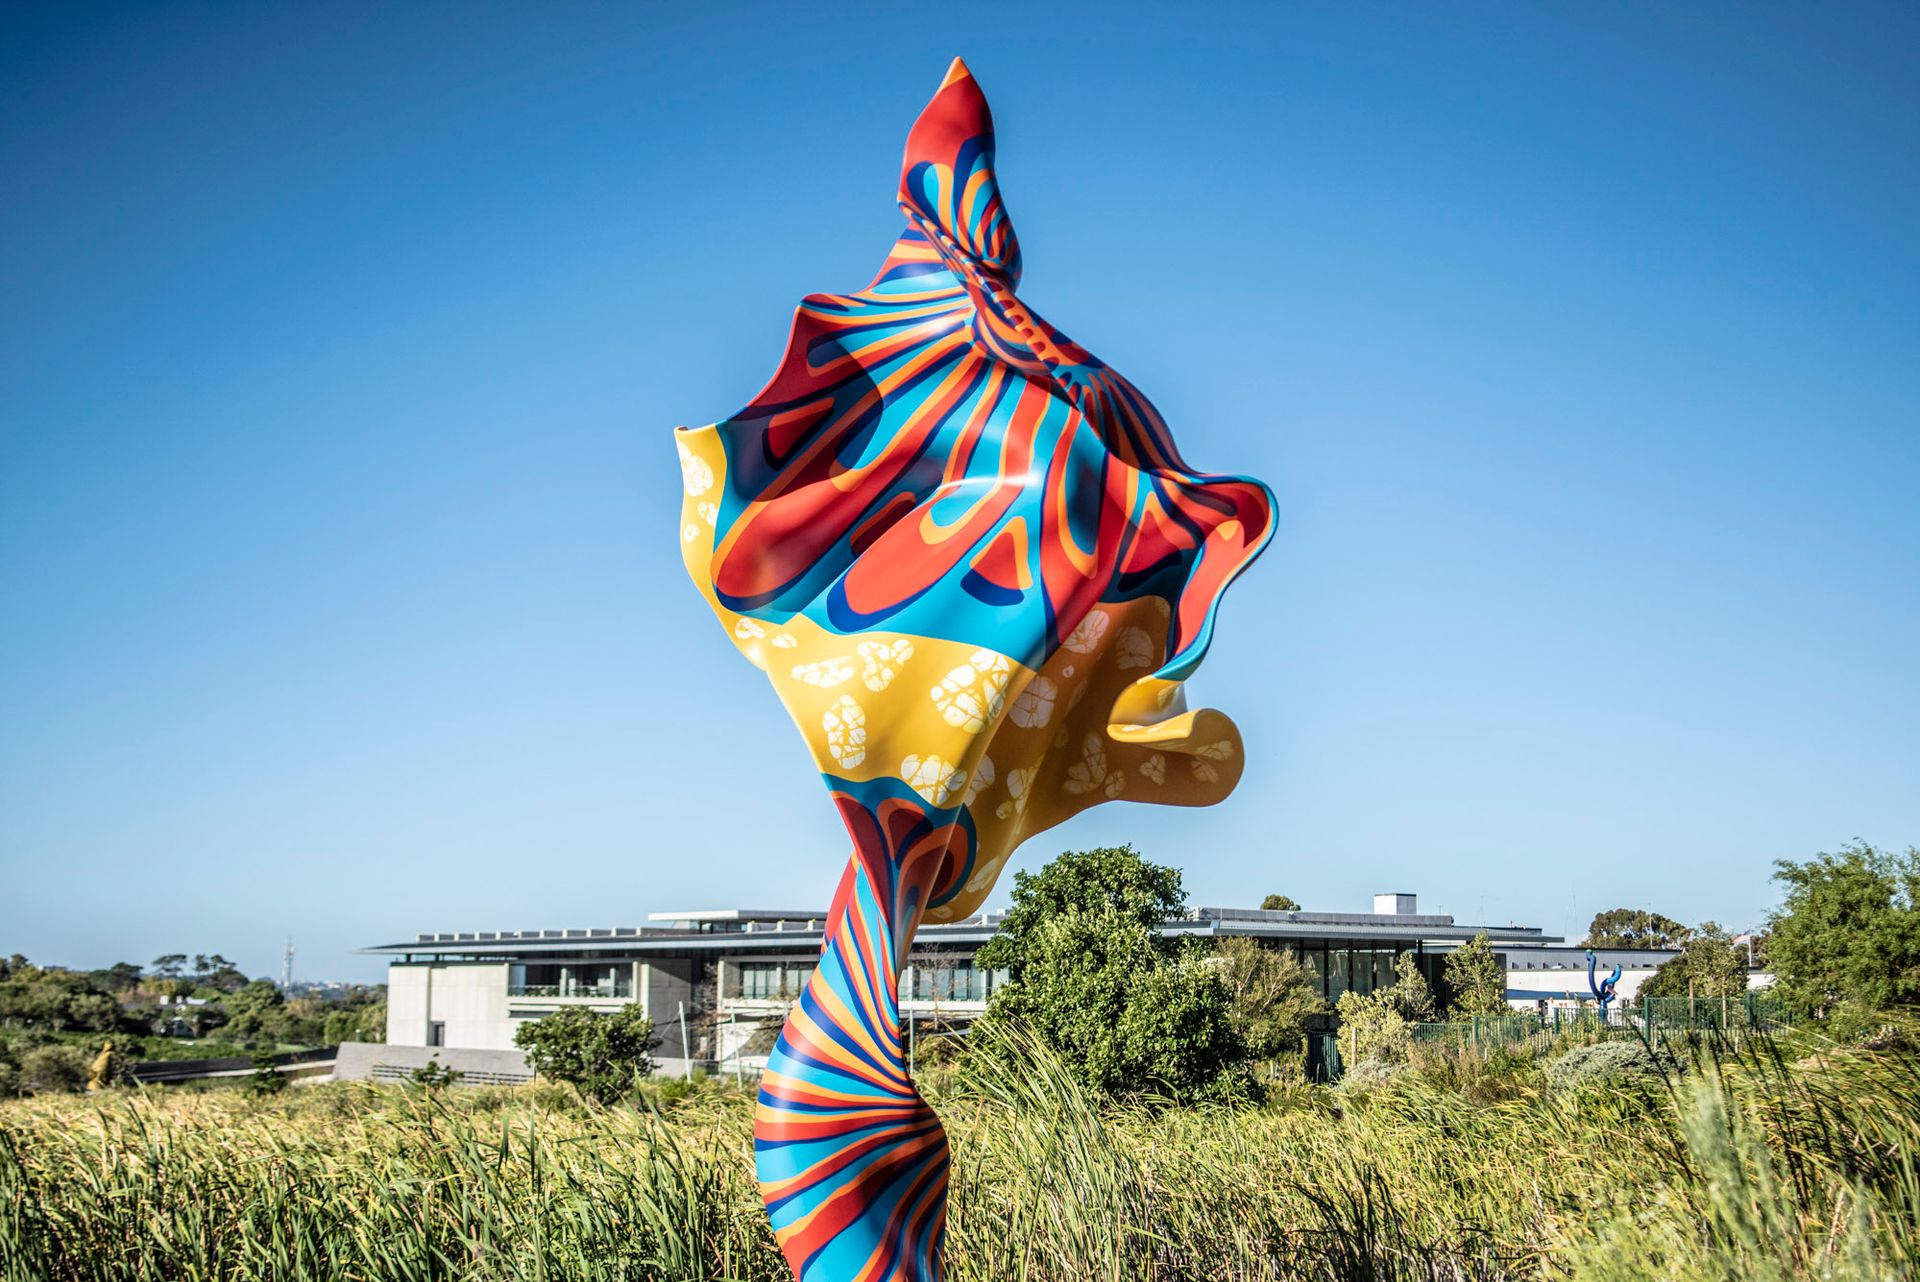 Yinka Shonibare's wind sculptures (see here at the Norval Foundation in Cape Town, South Africa) which evoke the wind that once took ships around the world could serve as an alternative to a traditional monument © Courtesy of the artist, Goodman Gallery, Cape Town, Johannesburg and London; James Cohan Gallery, New York; and Stephen Friedman Gallery, London.